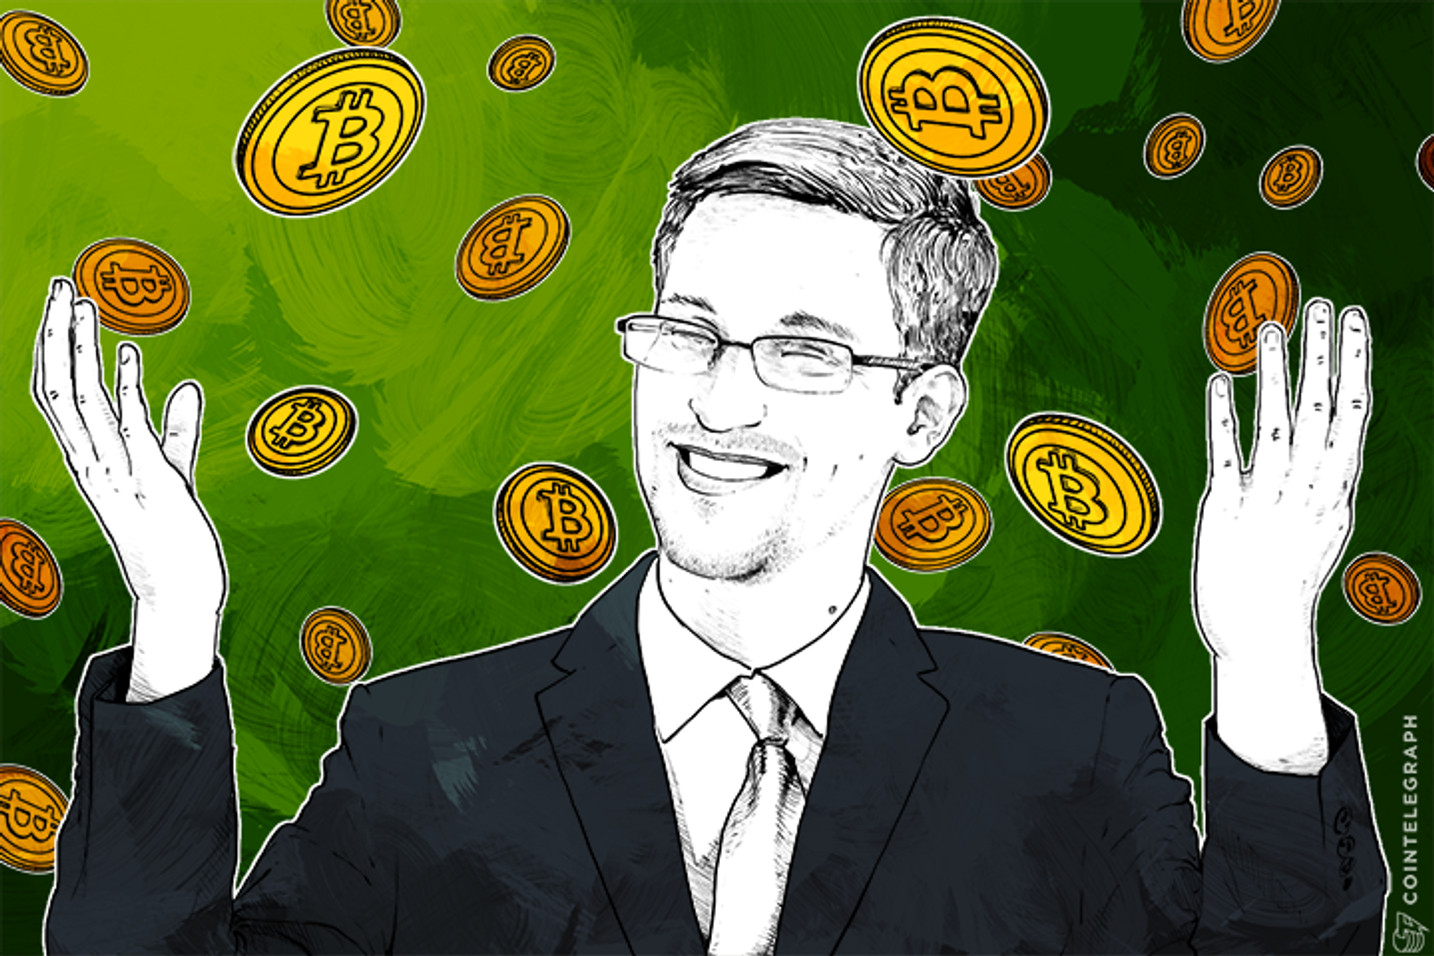 'Obama Effect' Results in 200 Bitcoin Donations to Edward Snowden